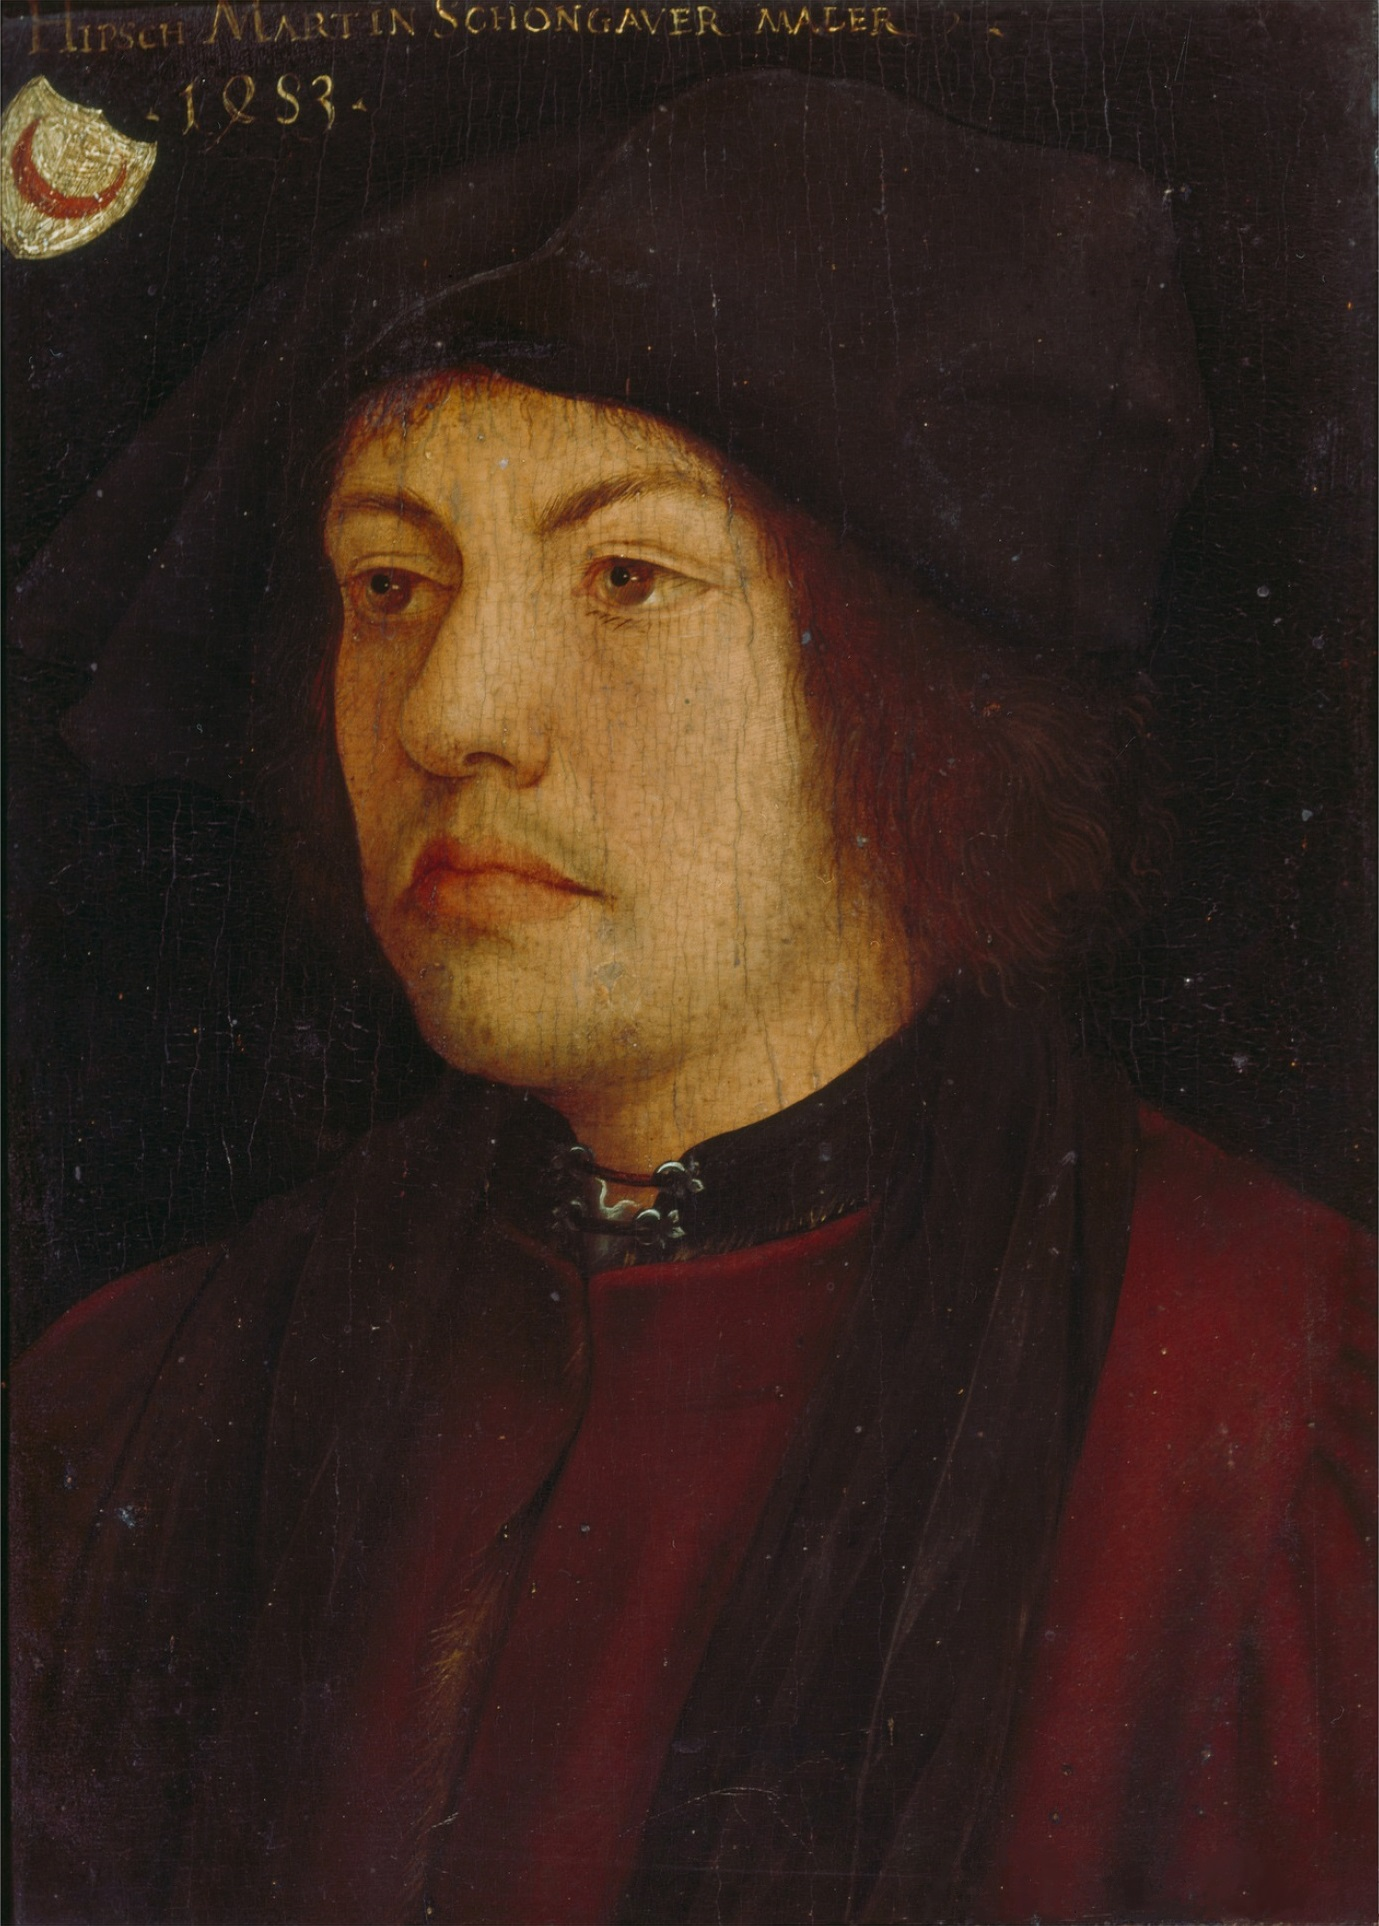 Portrait of Martin Schongauer